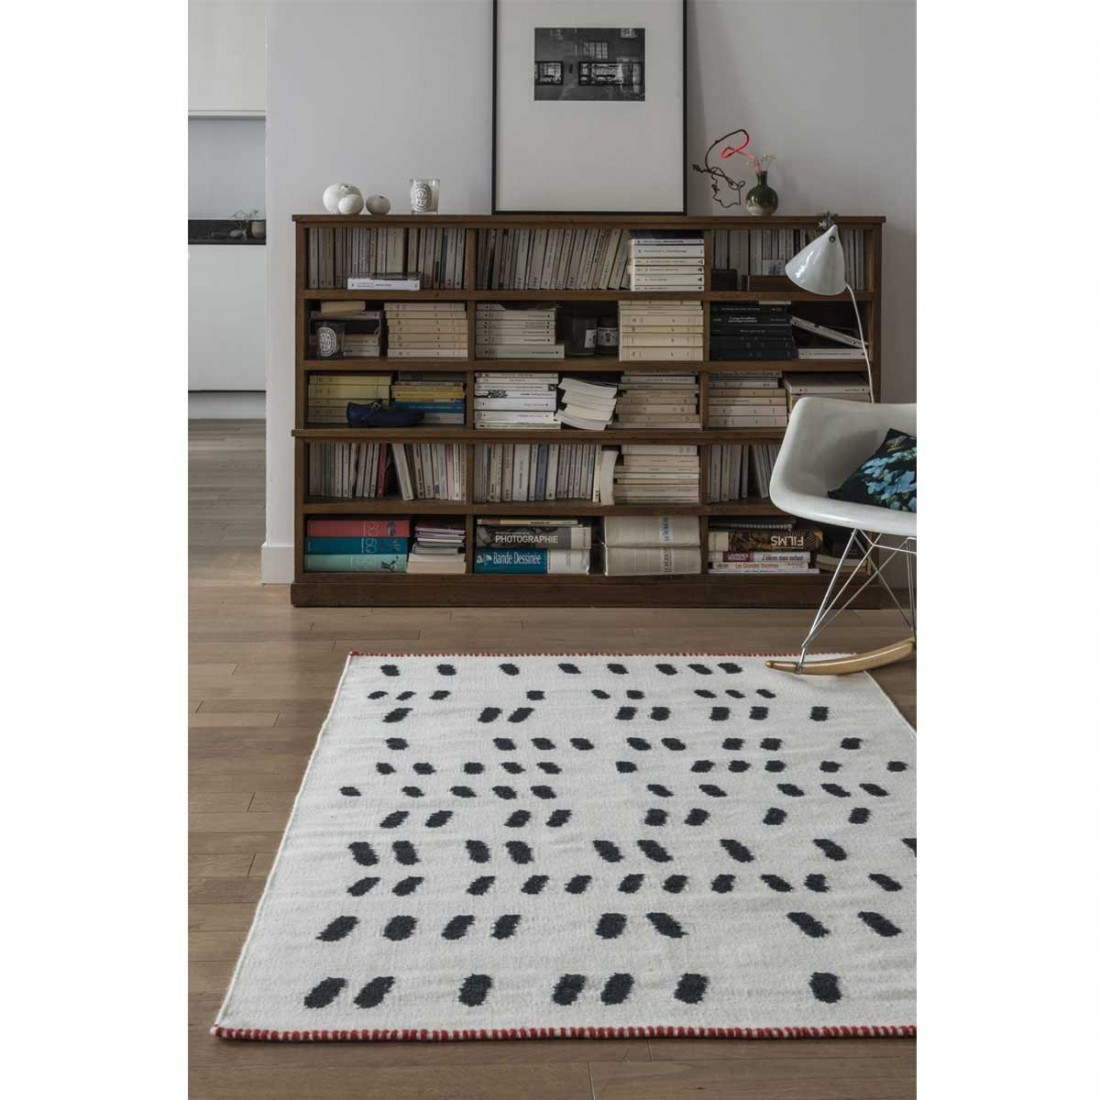 tapis enfant dashed art for kids ma chambramoi. Black Bedroom Furniture Sets. Home Design Ideas